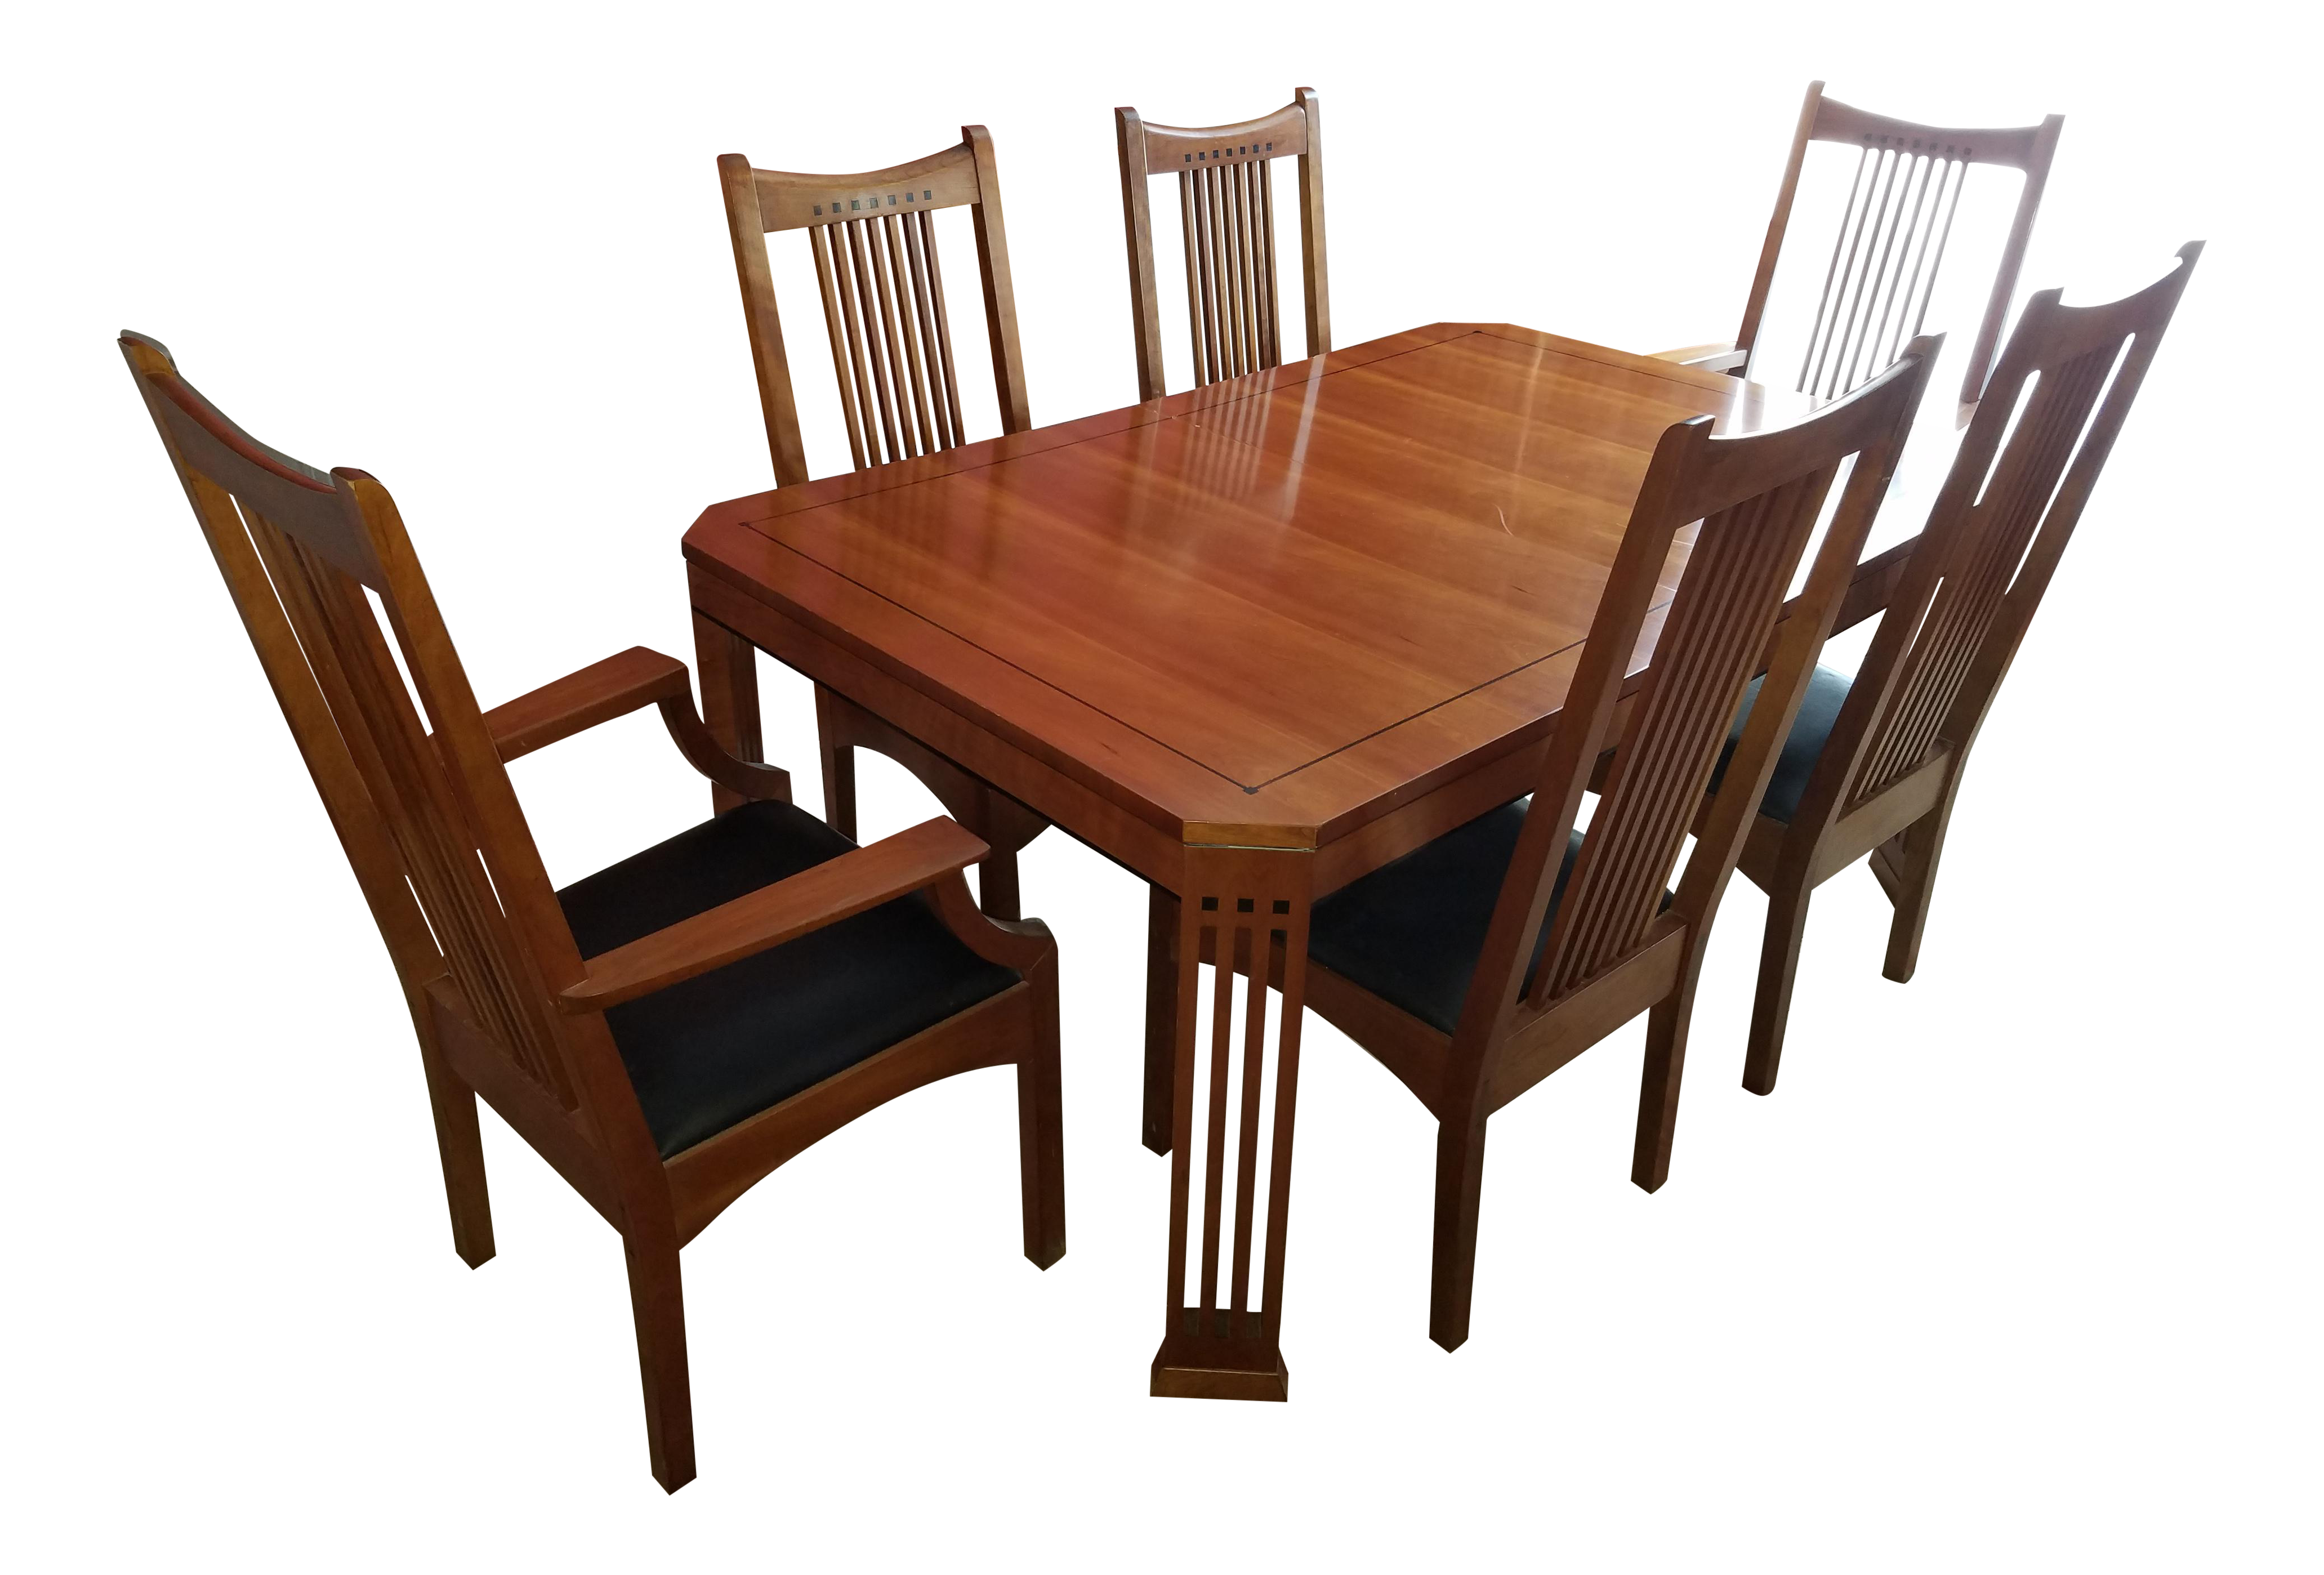 Stickley 21st Century Collection Dining Table Set With 6 Chairs | Chairish